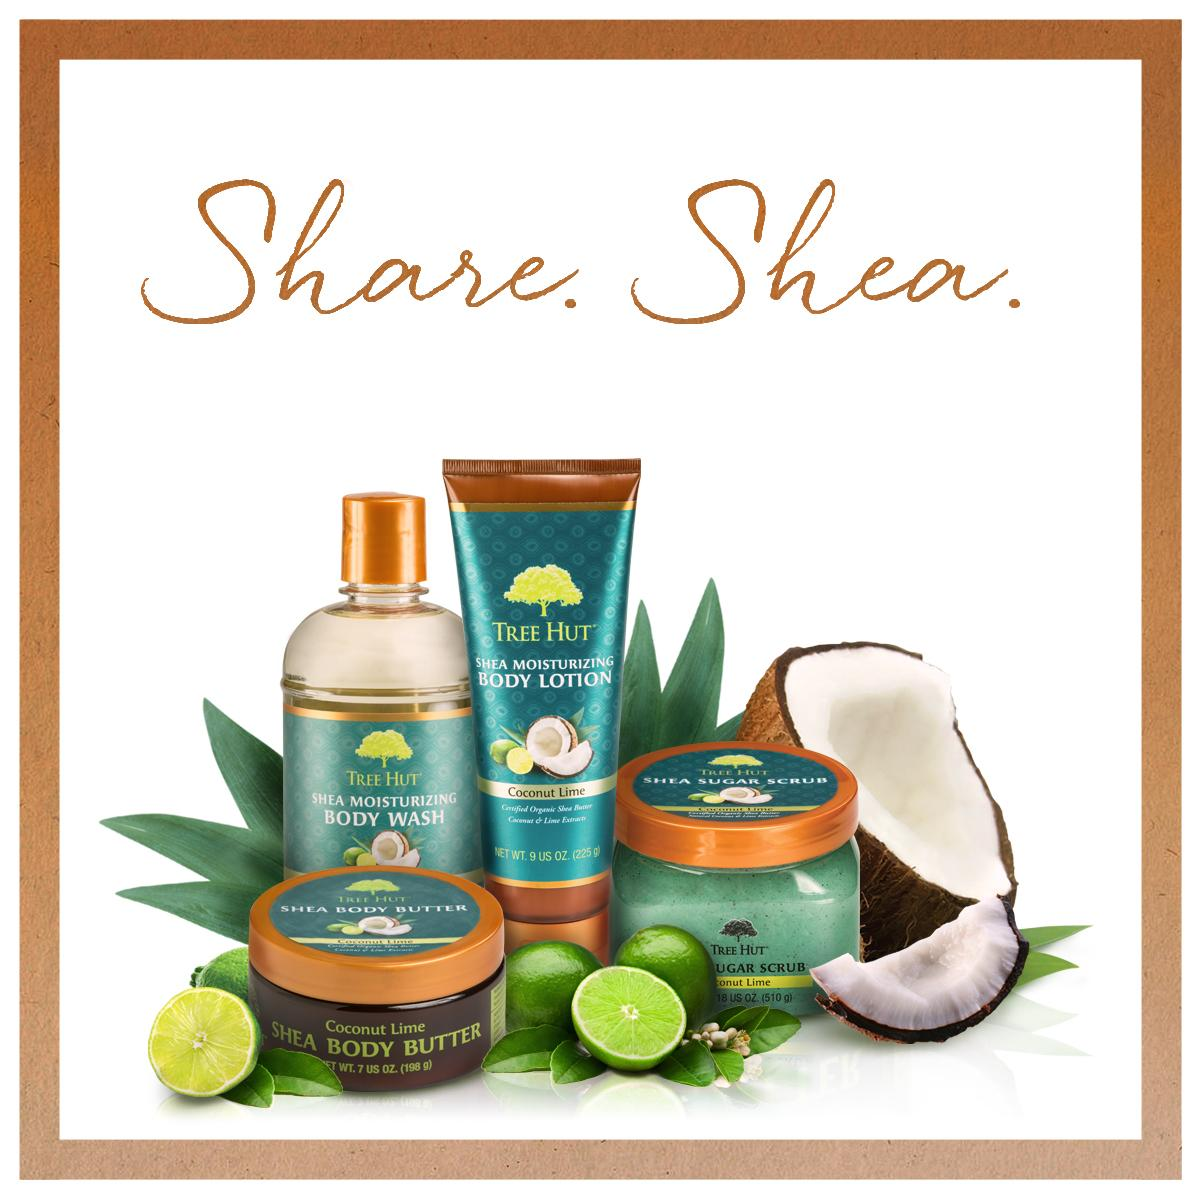 #ShareForShea - Share our status on Facebook for a chance to win Coconut Lime Body Butter! http://t.co/b9T3FyKVe7 http://t.co/qhyI2tDrKg